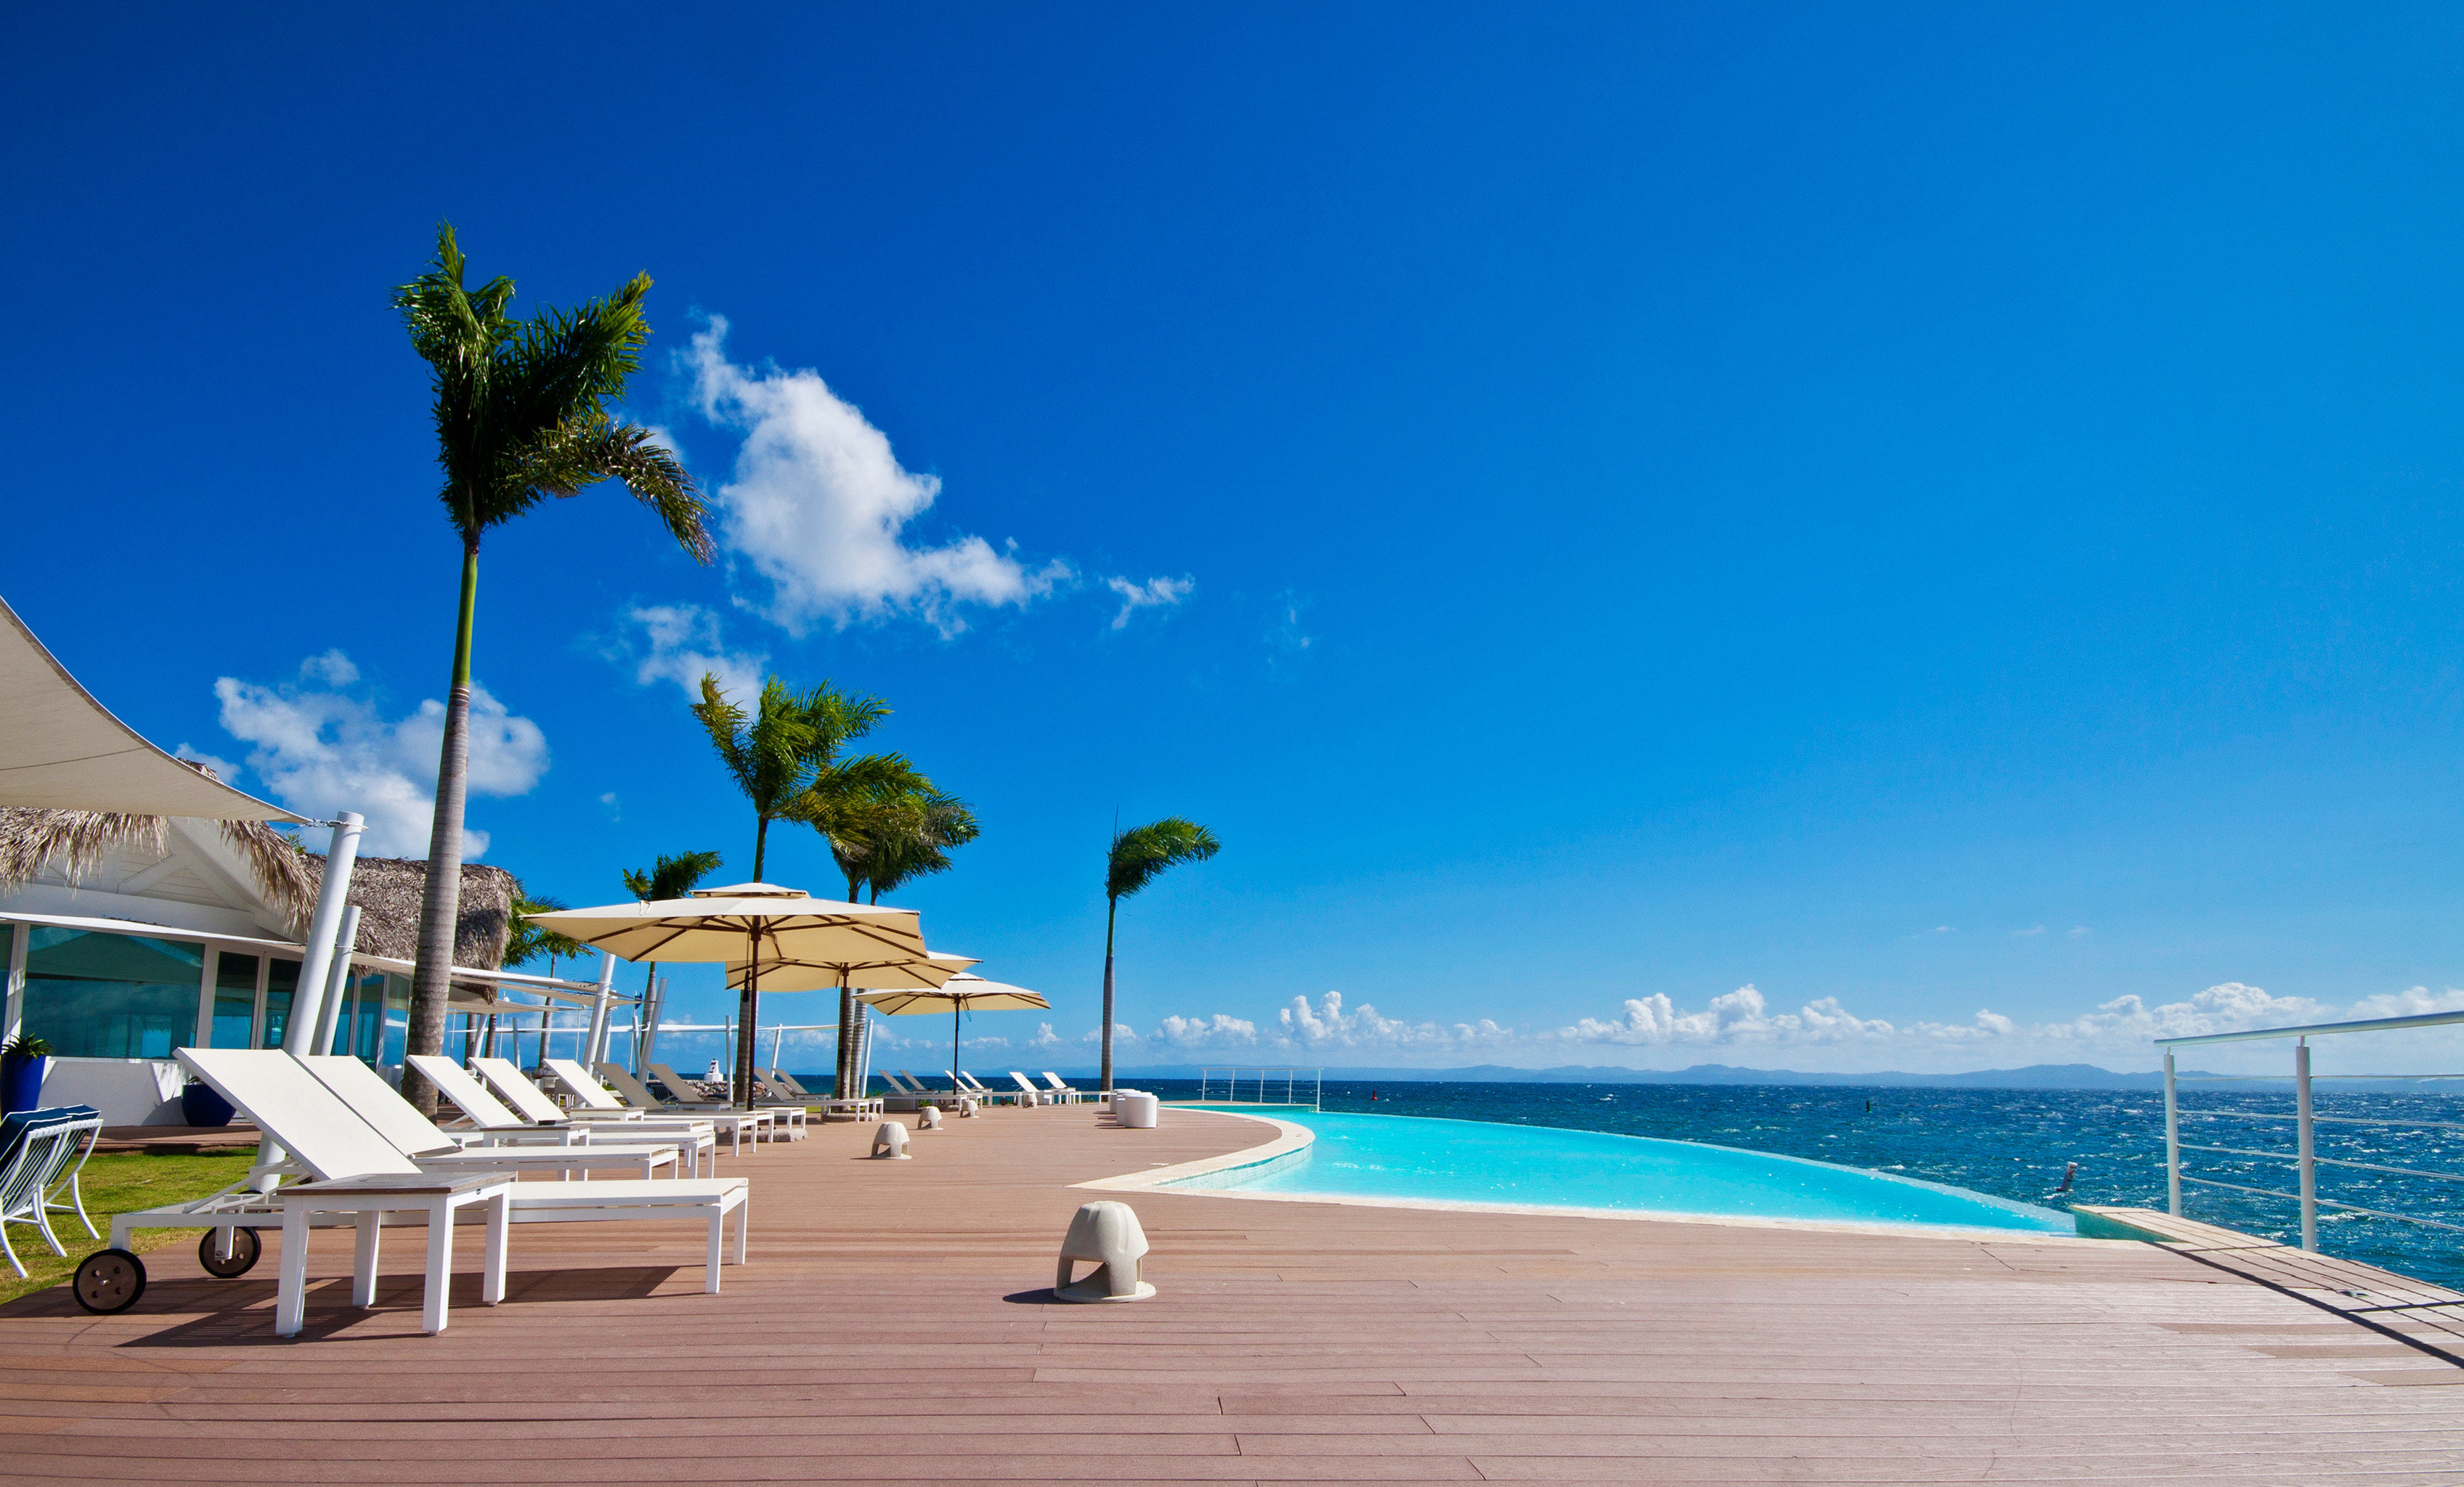 Beachfront Lounge Luxury Pool Scenic views sky ground umbrella chair Beach caribbean swimming pool Sea Ocean Resort Nature shore blue Coast Lagoon marina dock Deck sandy day